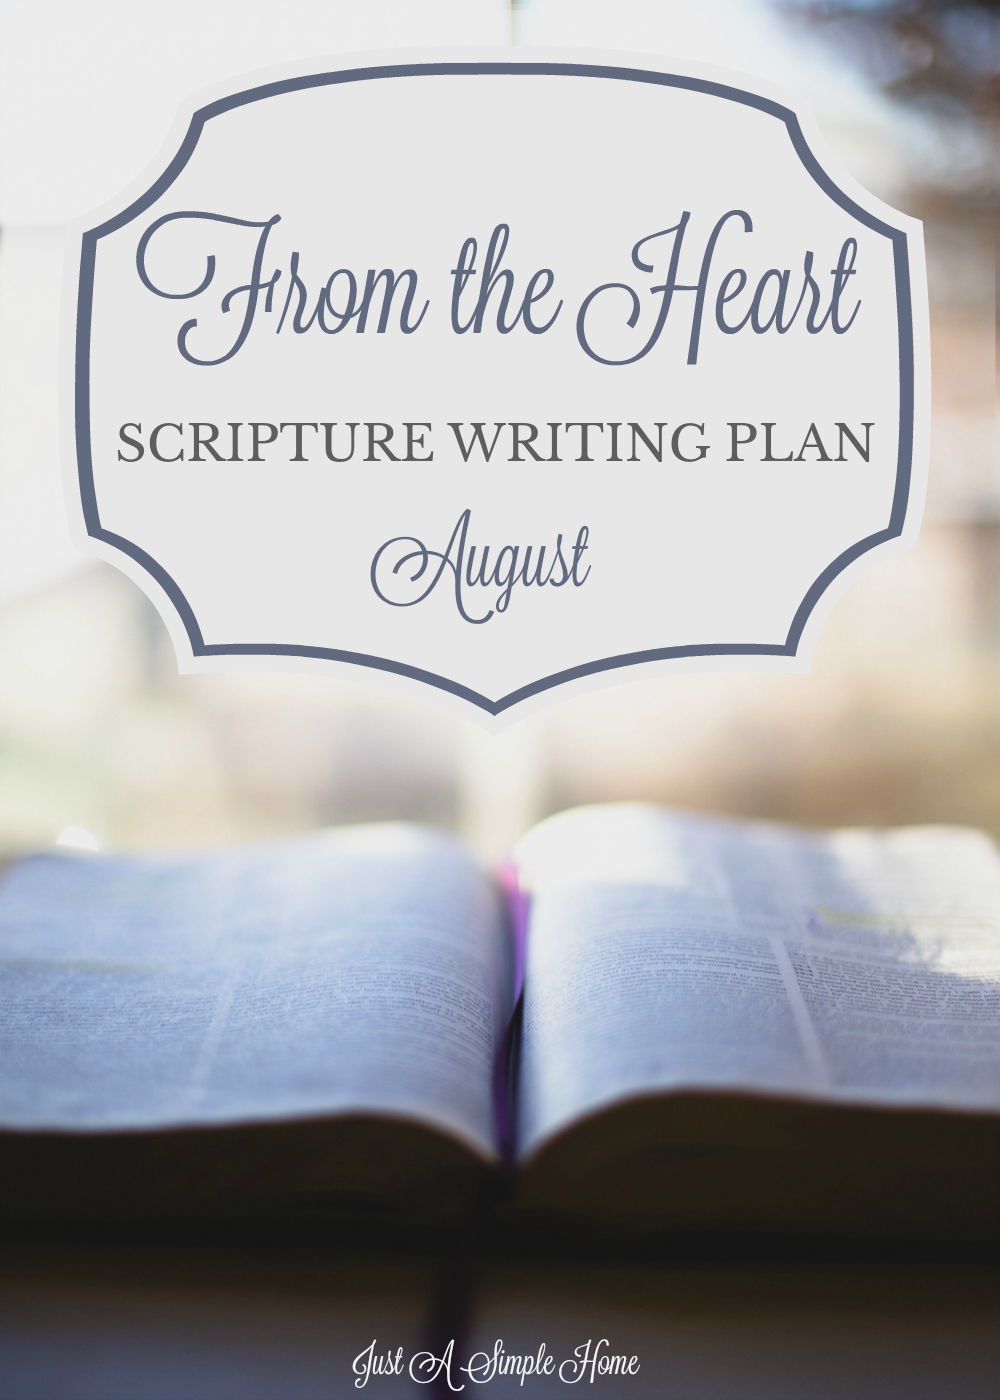 A beautiful Scripture Writing Plan about Waiting On Good. This plan is for August and we will dig into the Scriptures together and meditate on what it really means to wait on the ord. #scripturewriting #biblestudy #scriptureplan